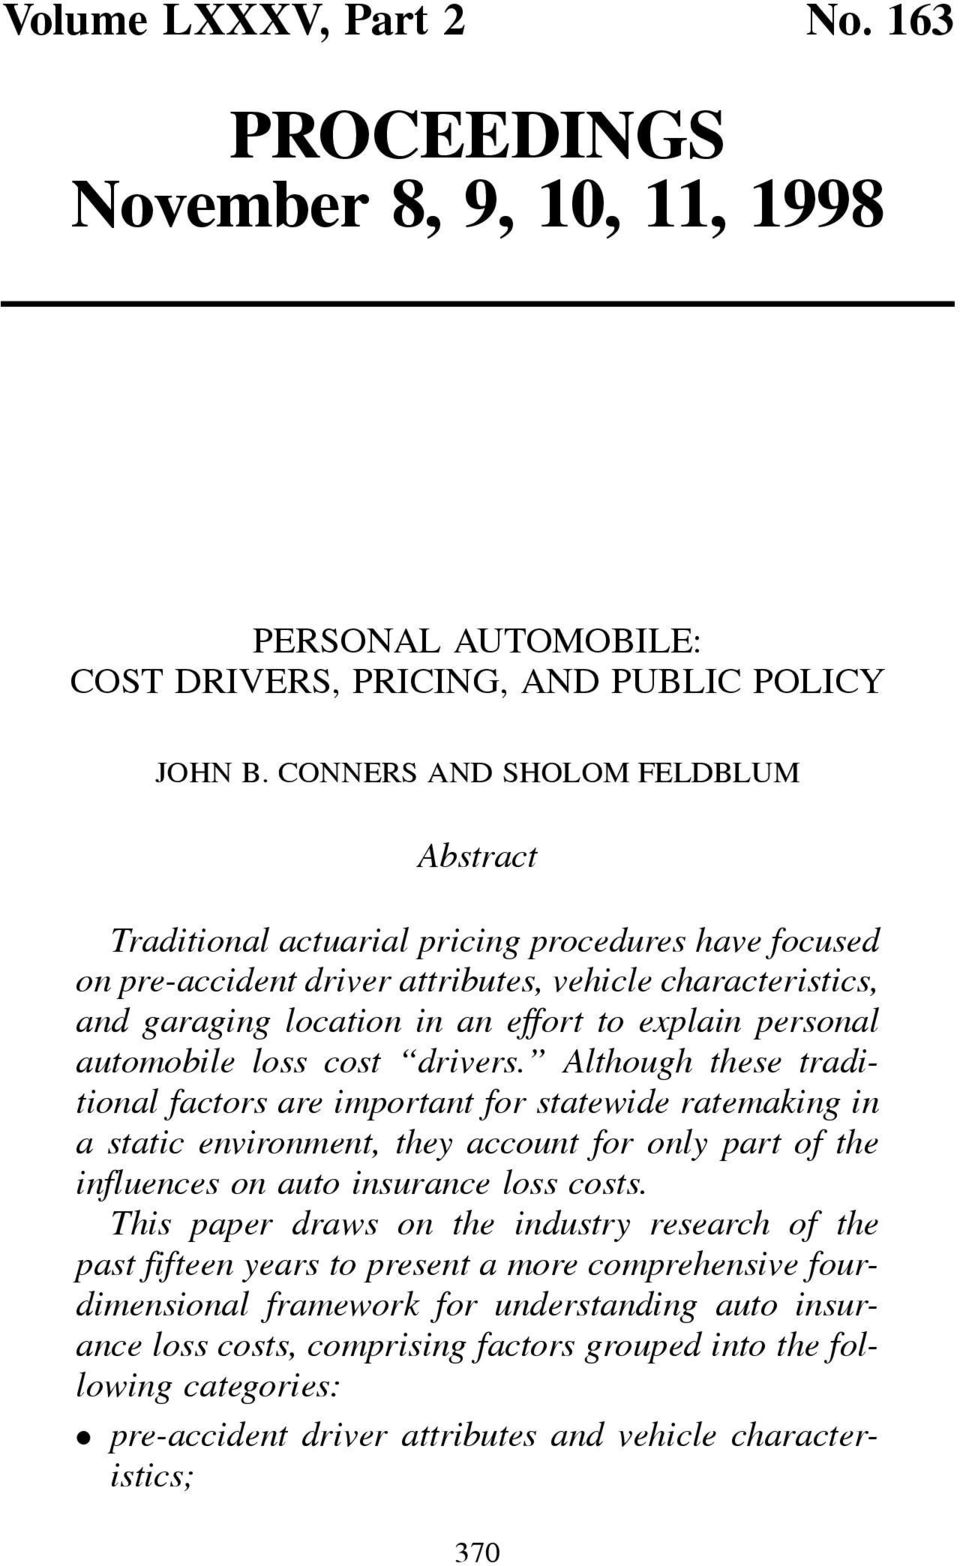 personal automobile loss cost drivers.